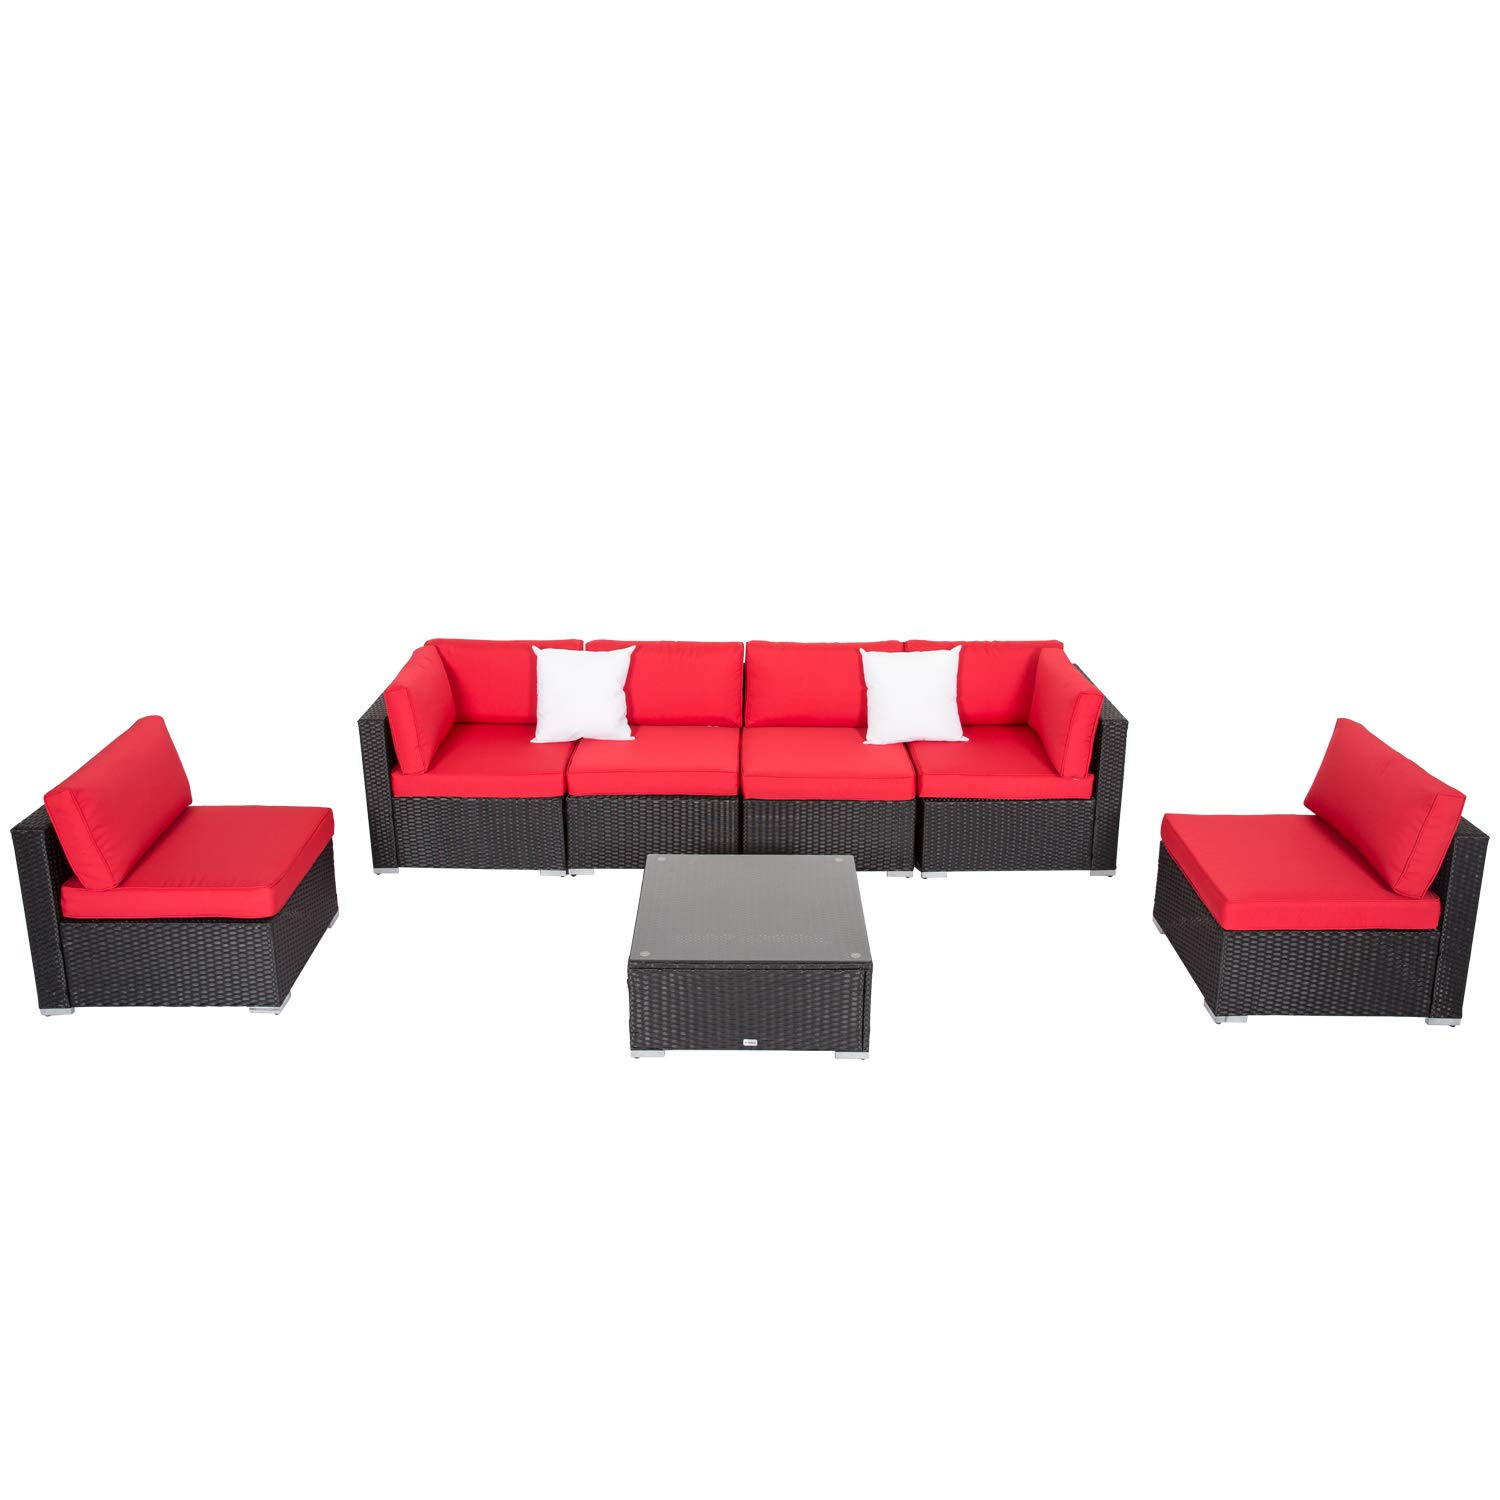 Patio furniture sectional sofa set 7 piece all weather resin wicker outdoor conversation set with cushions glass coffee table garden backyard